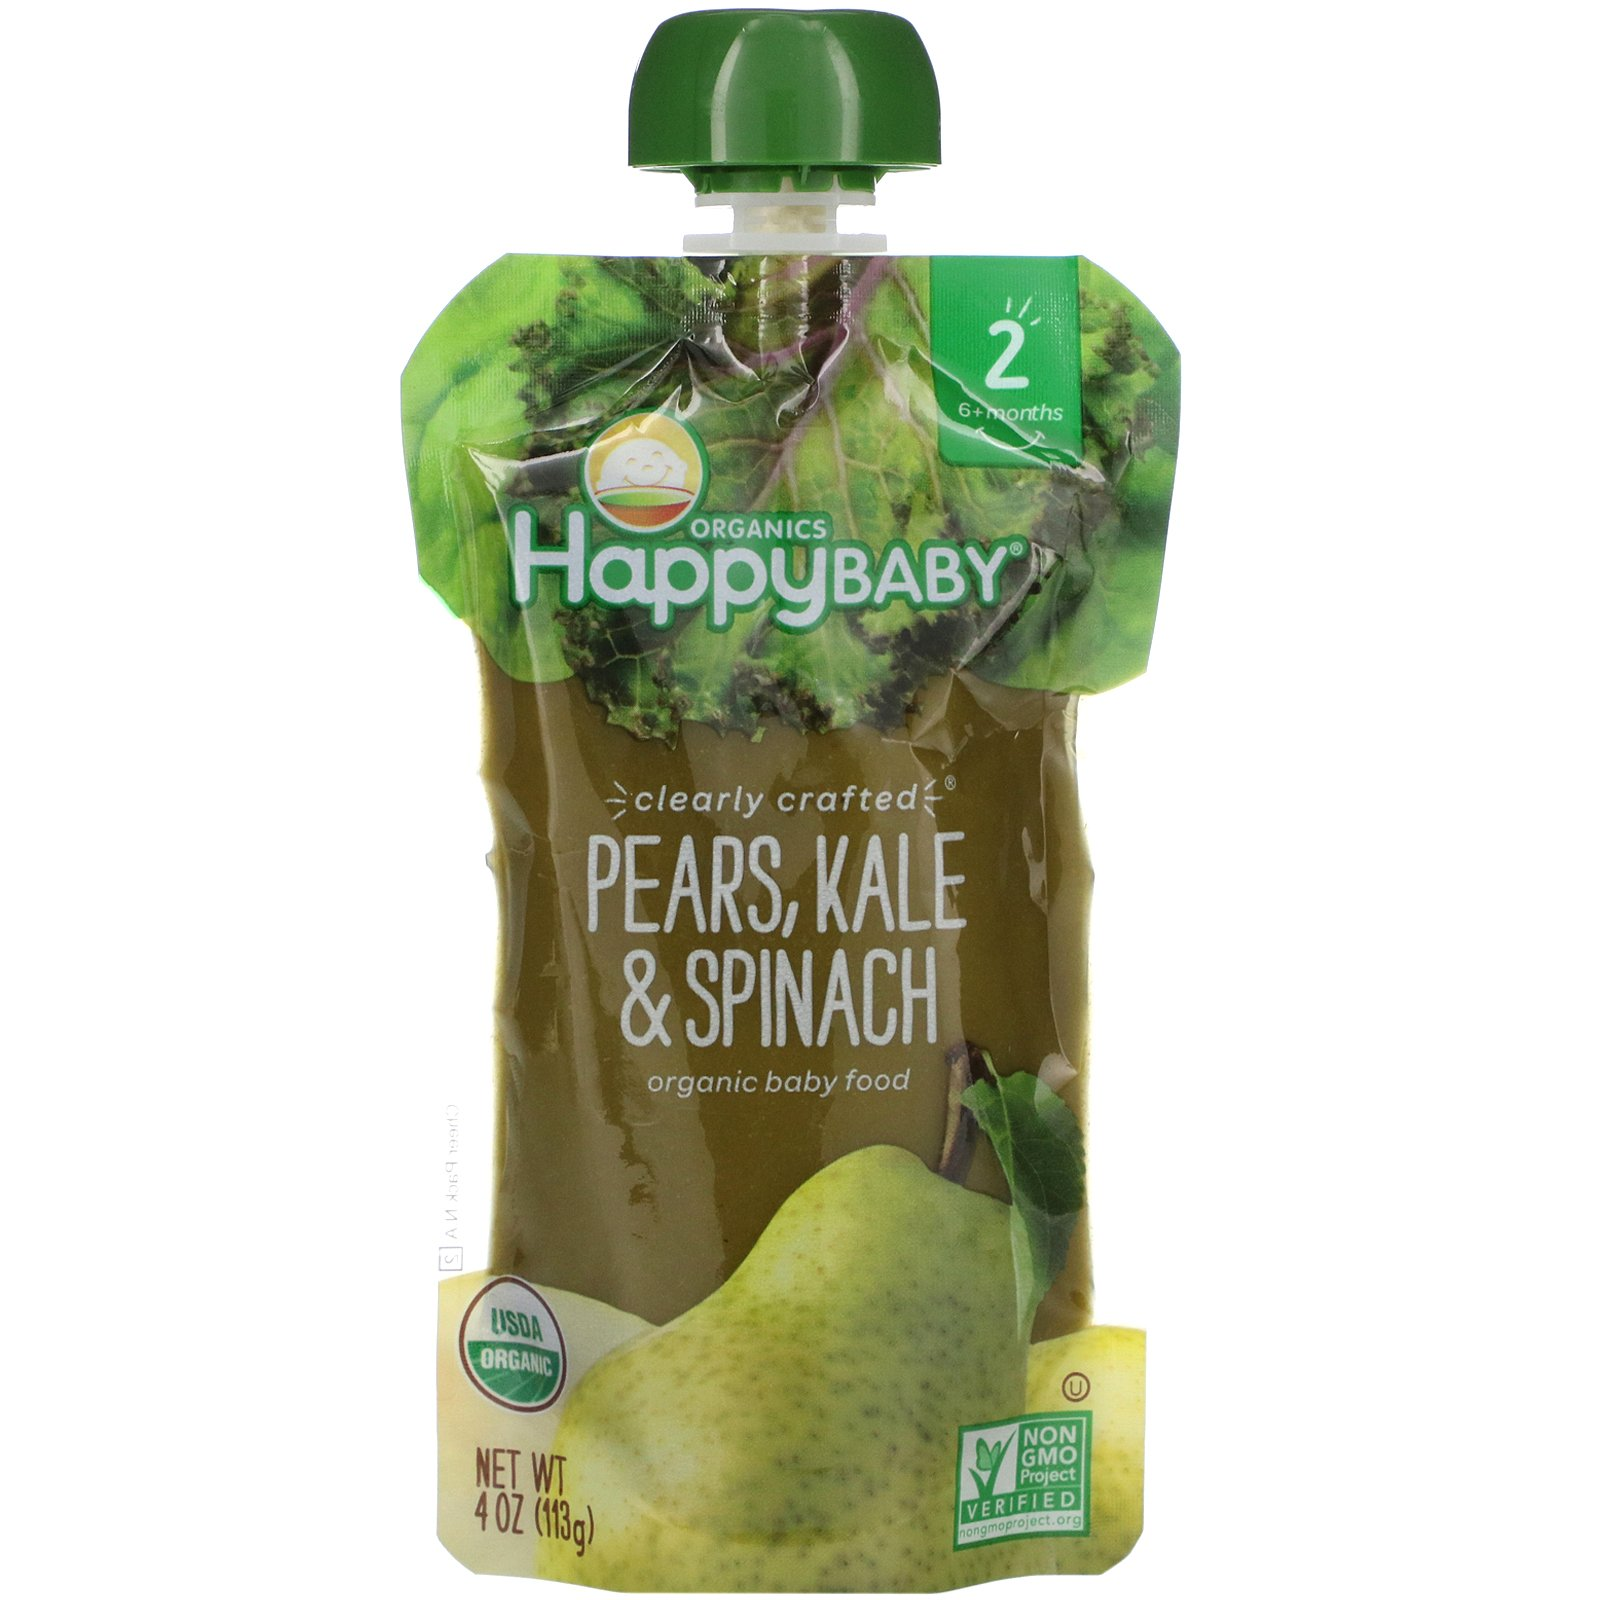 Happy Family Organics, Organic Baby Food, Stage 2, Clearly Crafted, Pears, Kale & Spinach, 6+ Months